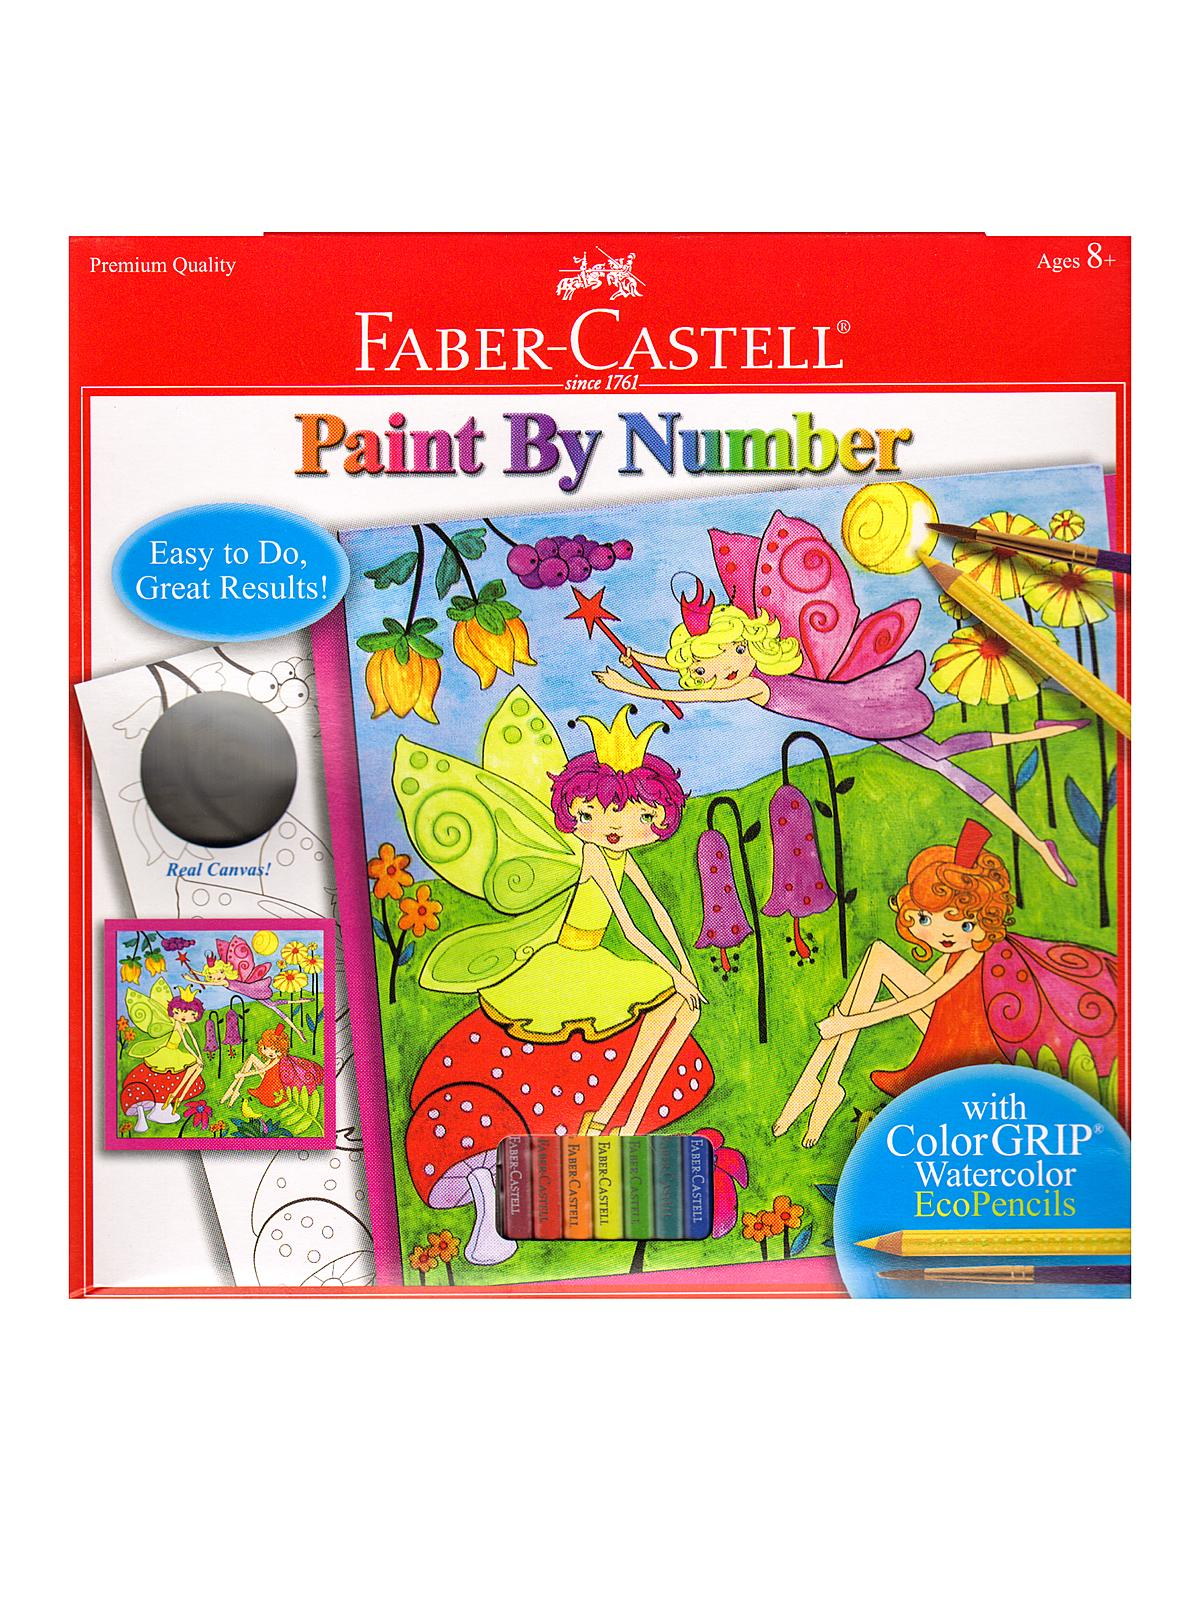 Paint by Number with Watercolor Pencils Kits fairy garden